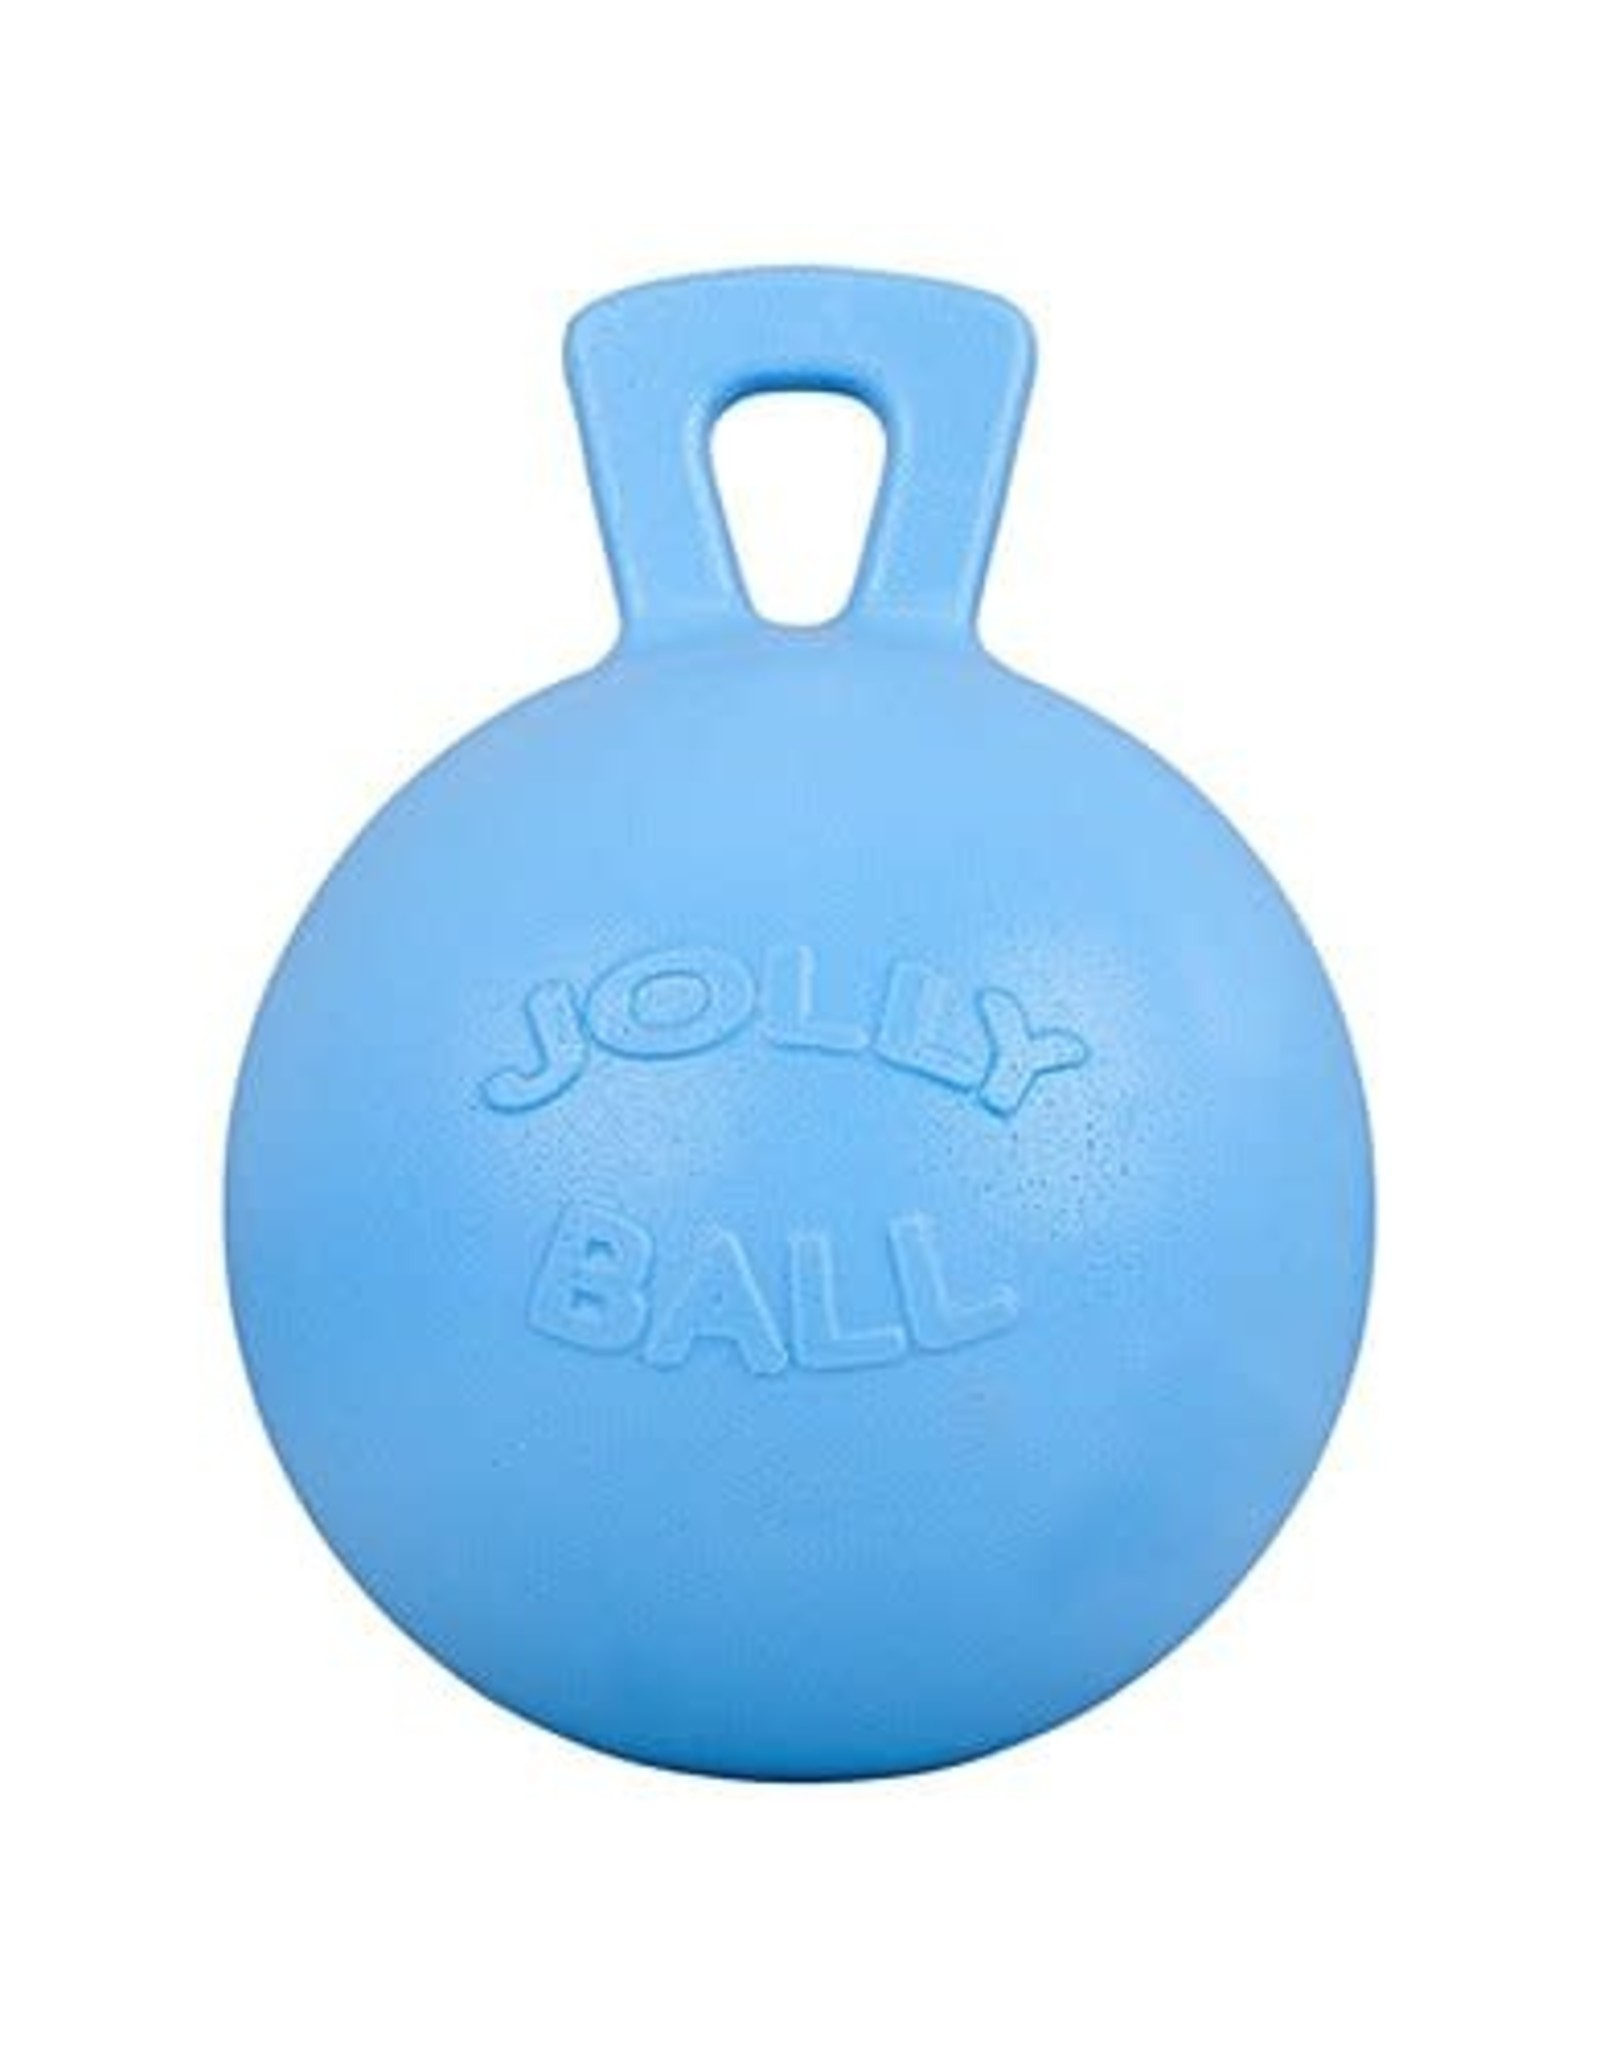 Jolly ball Jolly ball Speelbal Lichtblauw Bosbes